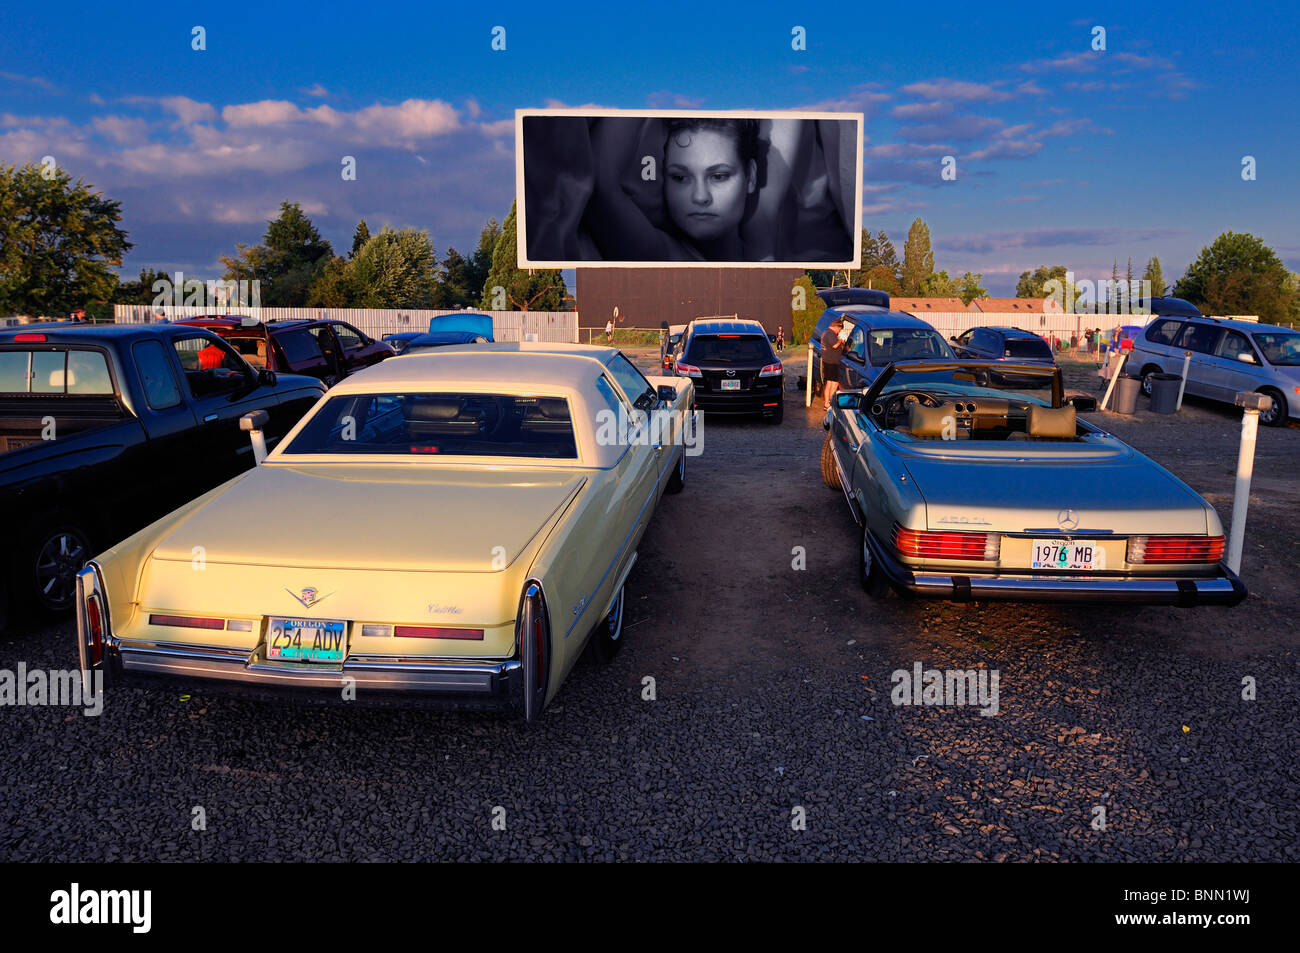 Drive In Or Dallas Motor Vu